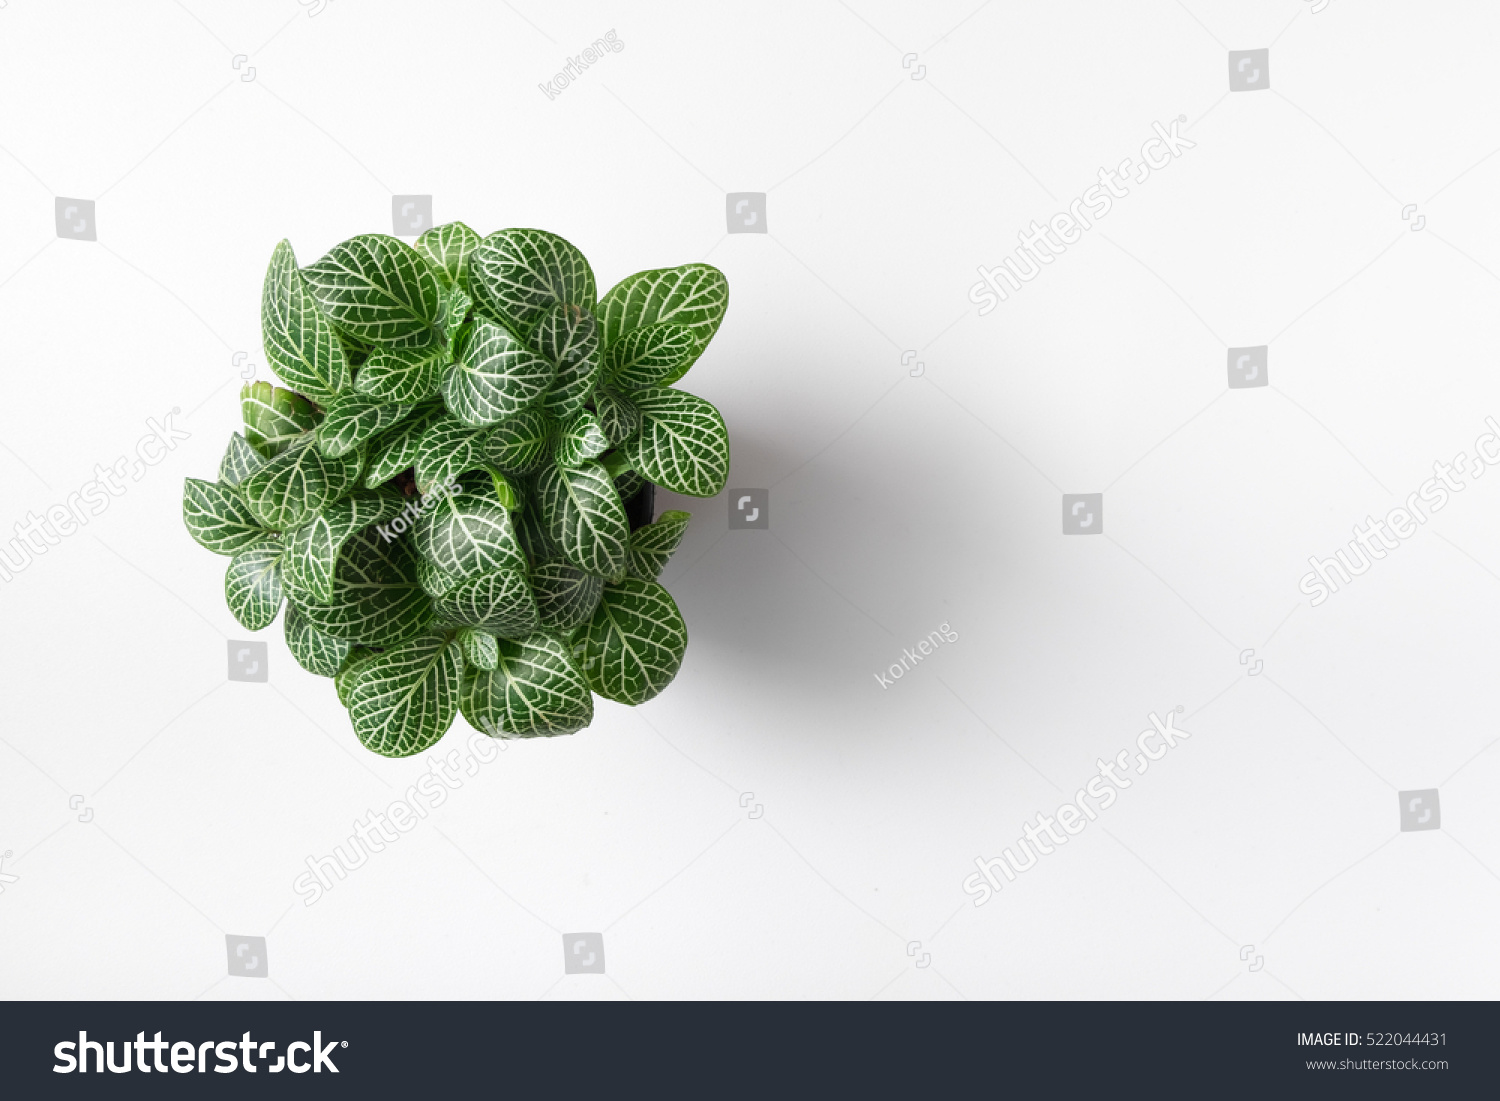 Top view plant in pot isolated on white desk background #522044431